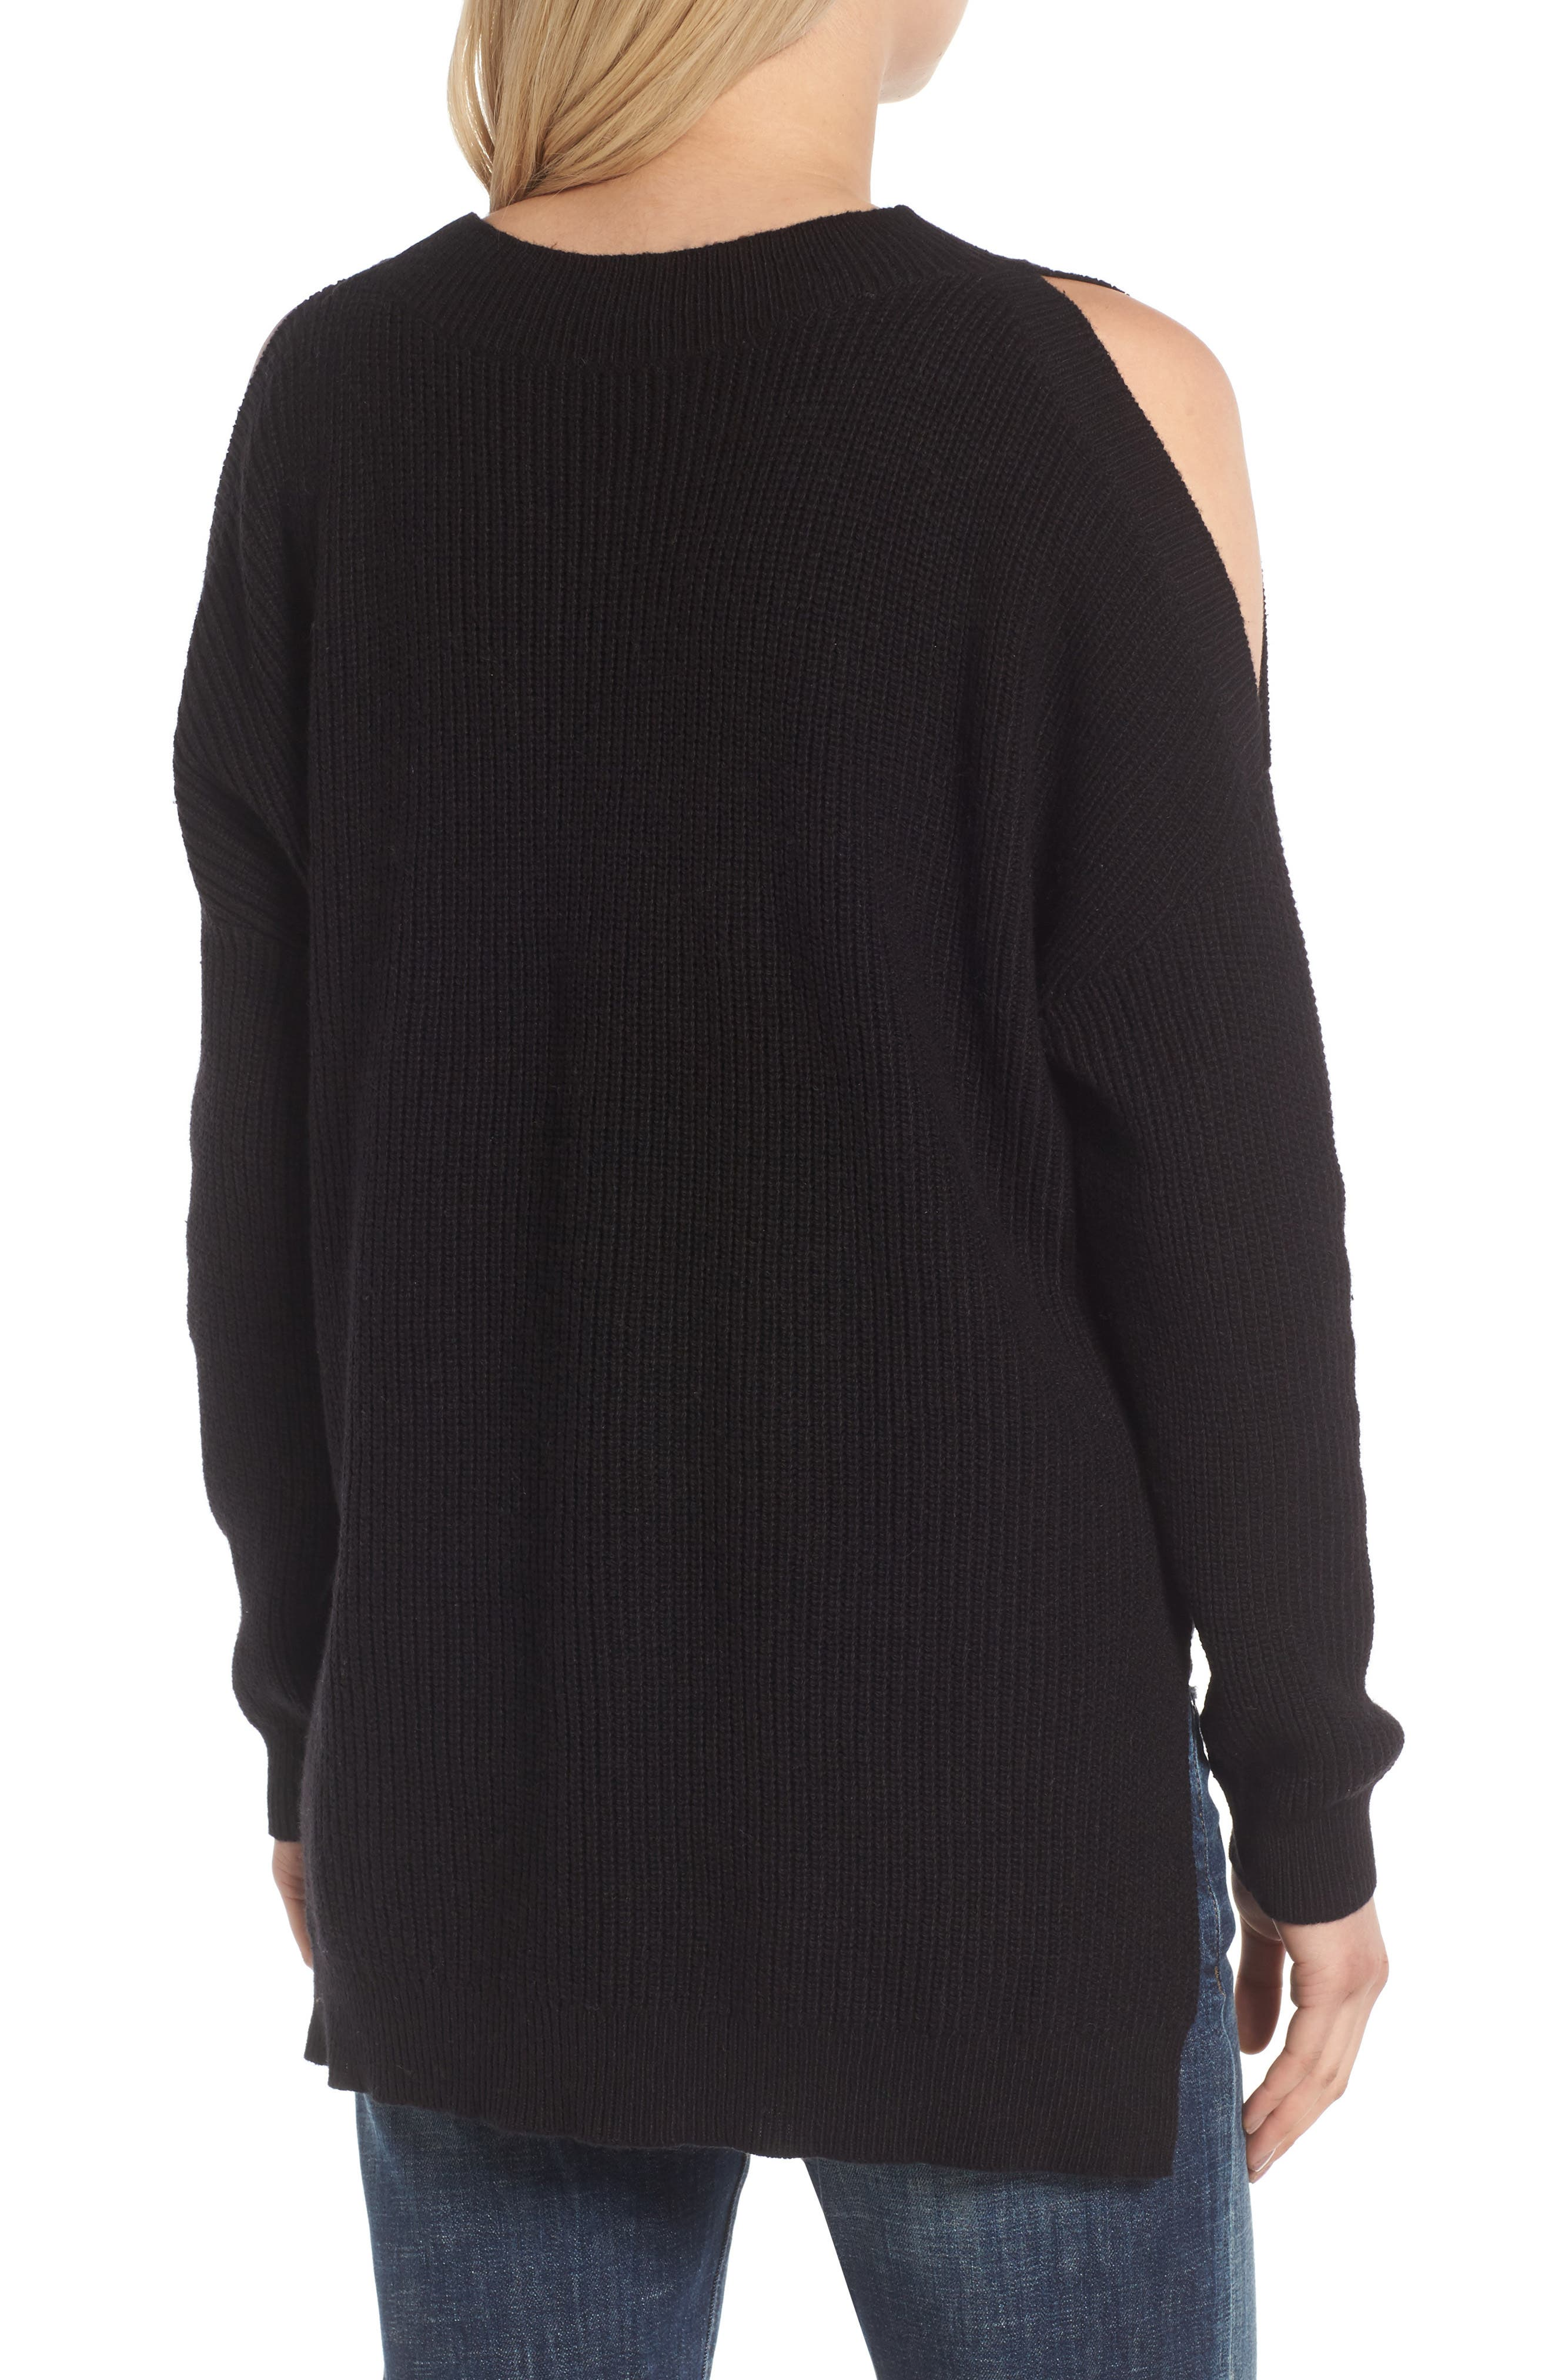 Cold Shoulder Tunic Sweater,                             Alternate thumbnail 2, color,                             001